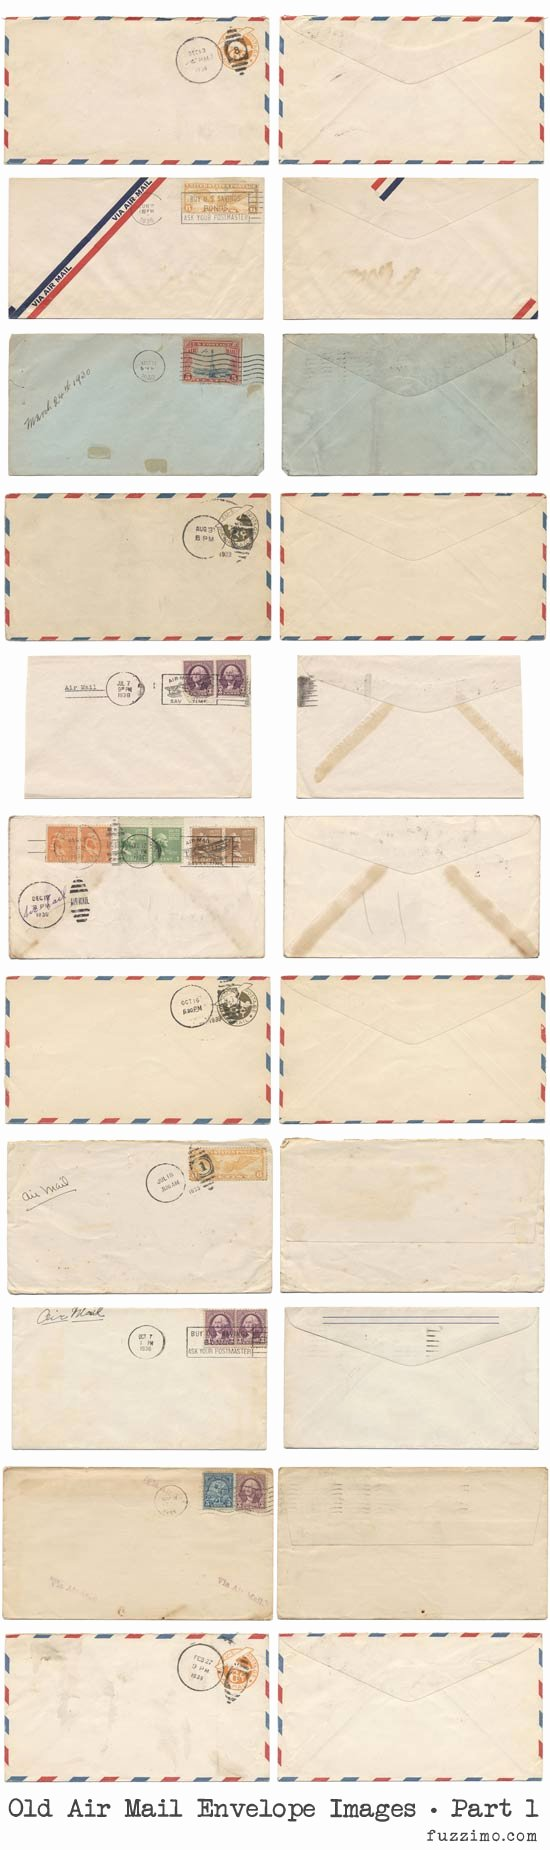 Interoffice Envelope Template Lovely What Number are 5 X 7 Envelopes 6x6 Envelopes Canada